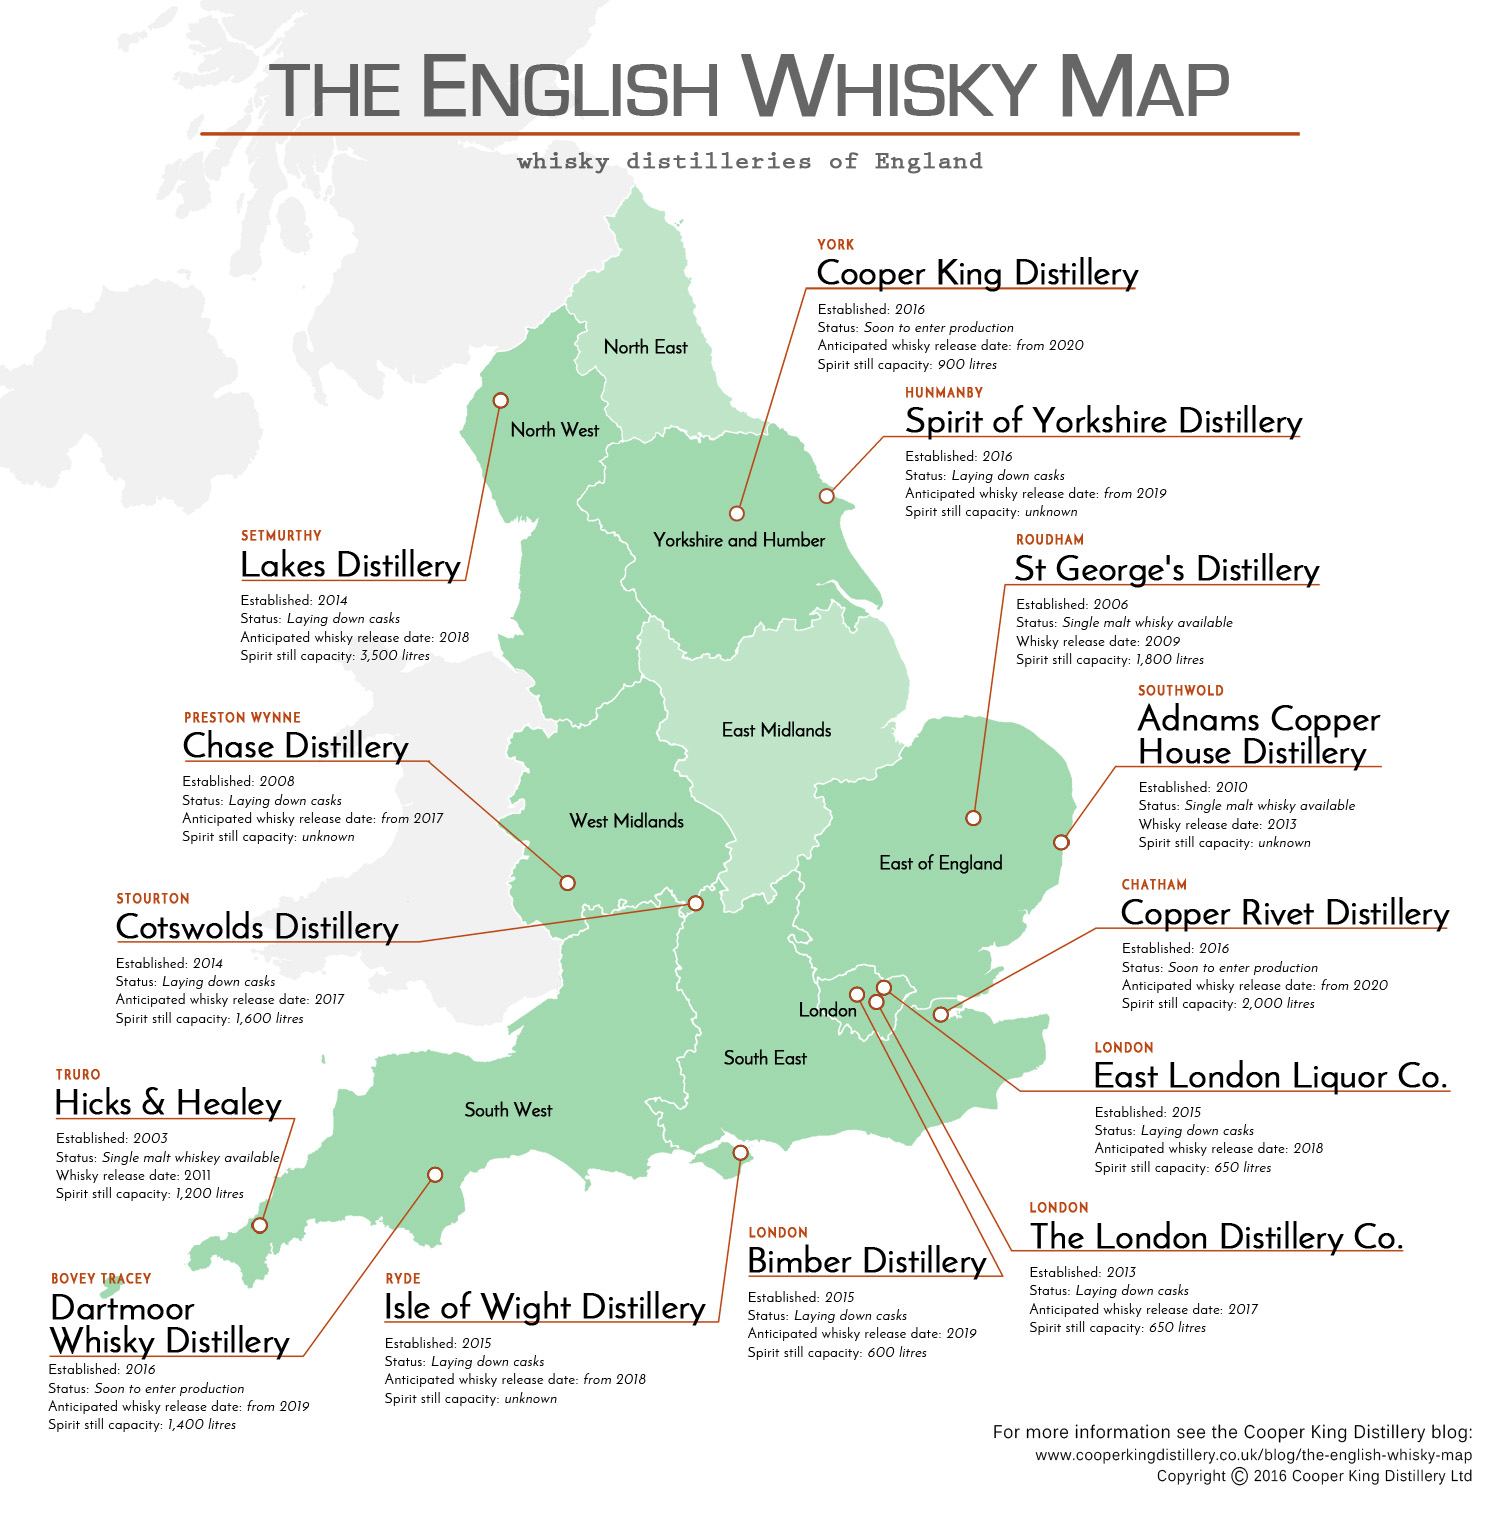 Click here for a full-sized image    of the English Whisky Map   .